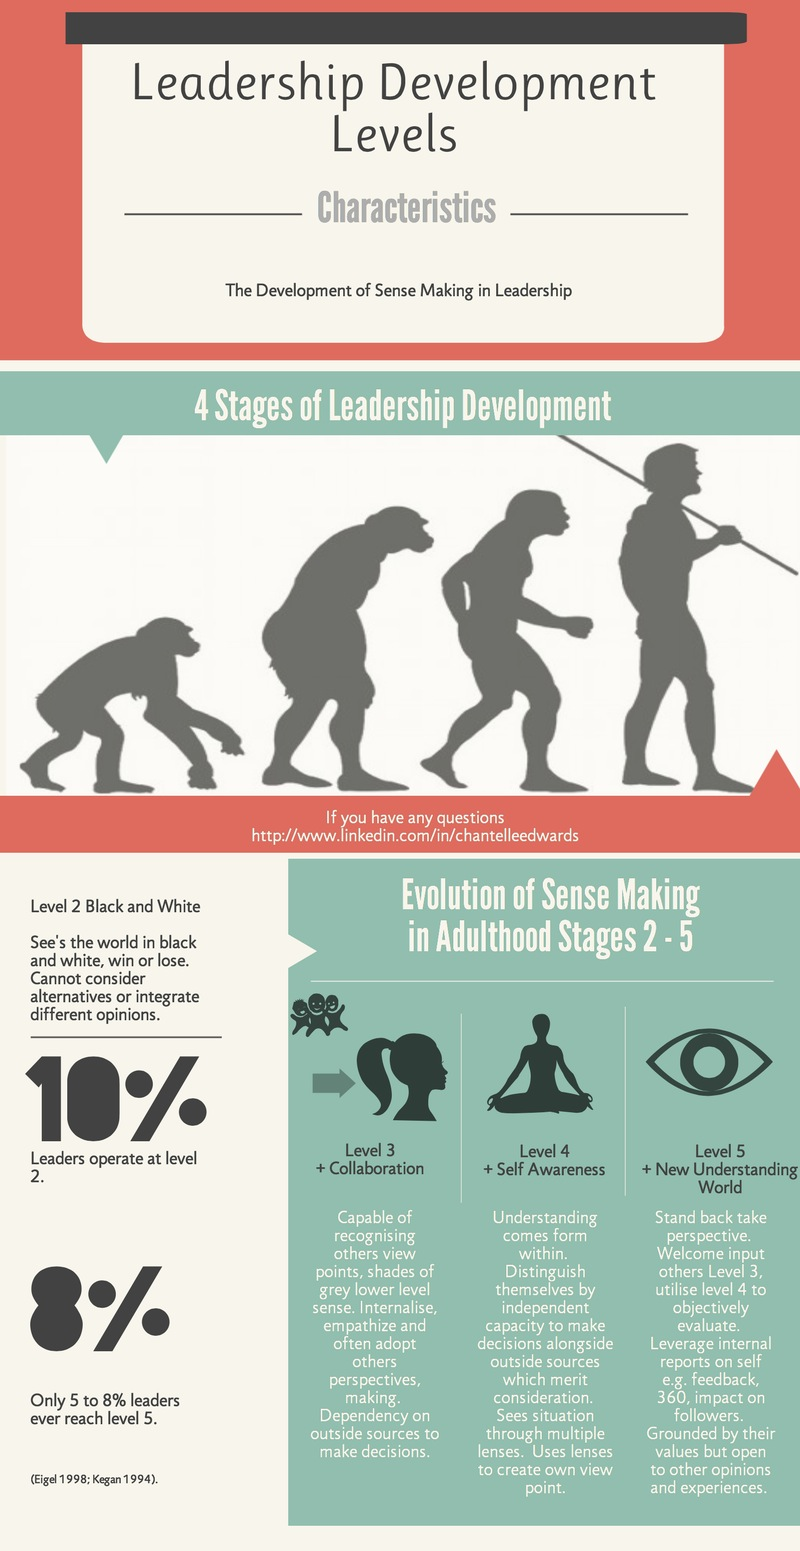 Leadership Development via Sense Making